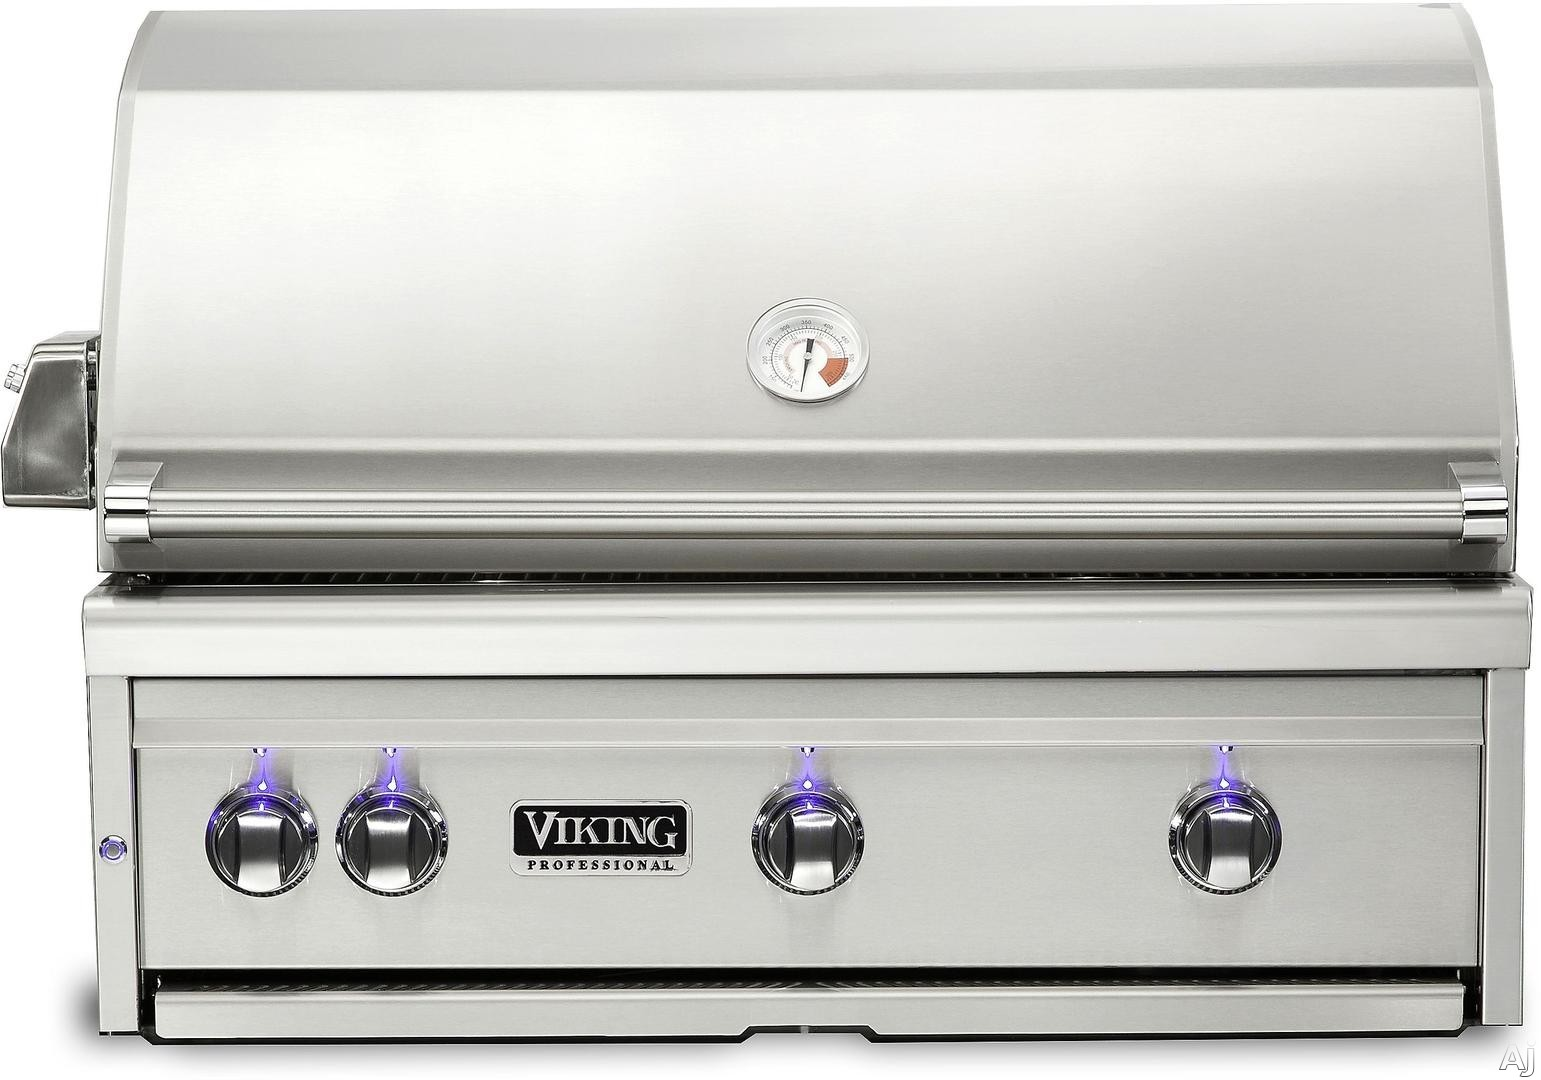 Viking Professional 5 Series VQGI5360LSS 36 Inch Built In Grill with ProSear Burner, Rotisserie, Smoker Box, Blue LED Knobs, Halogen Grill Lights, Ceramic Briquettes, Temperature Gauge, 3 Burners and